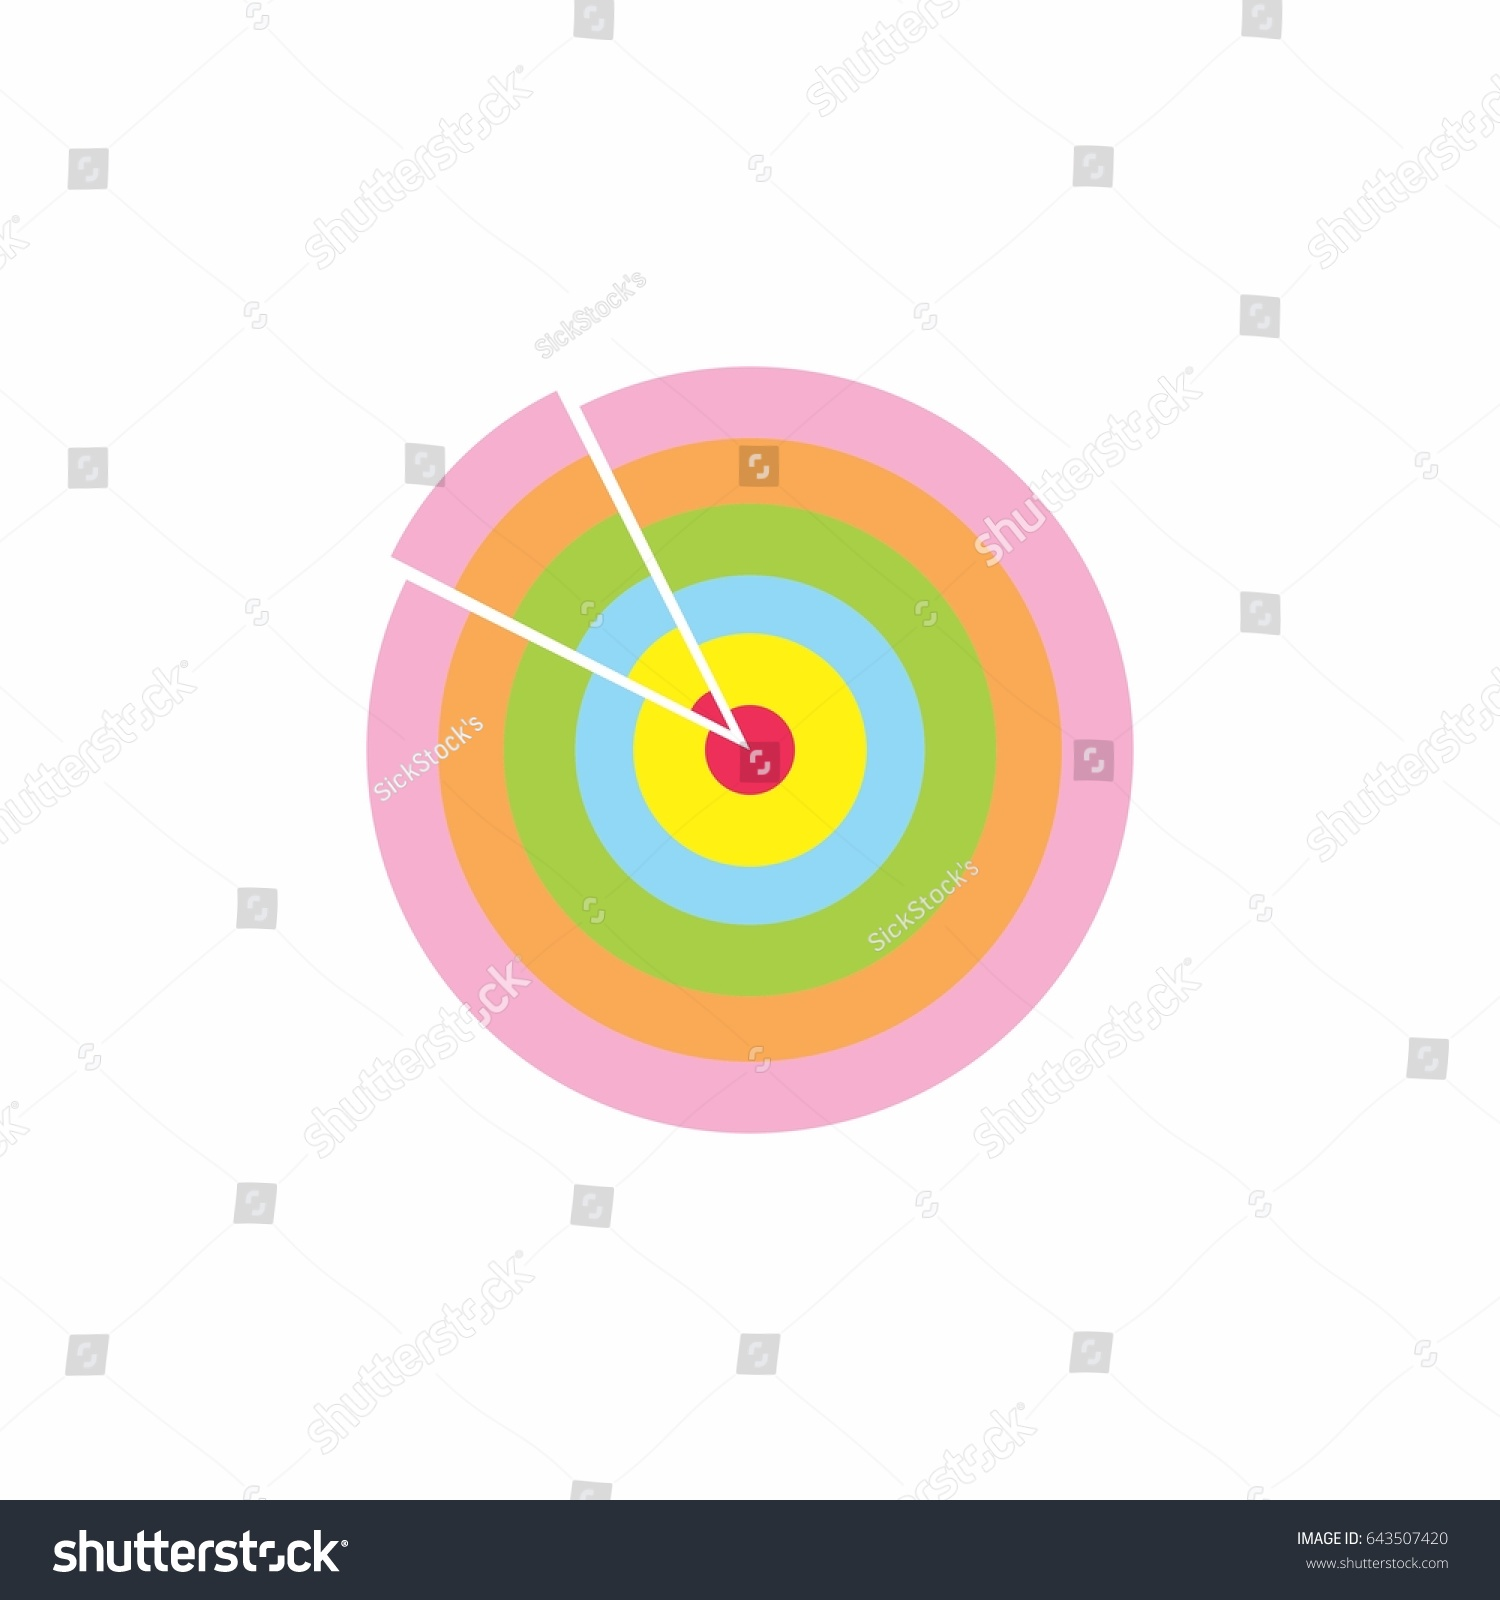 Vector circles object form target symbol stock vector 643507420 vector of circles object form target symbol design buycottarizona Image collections